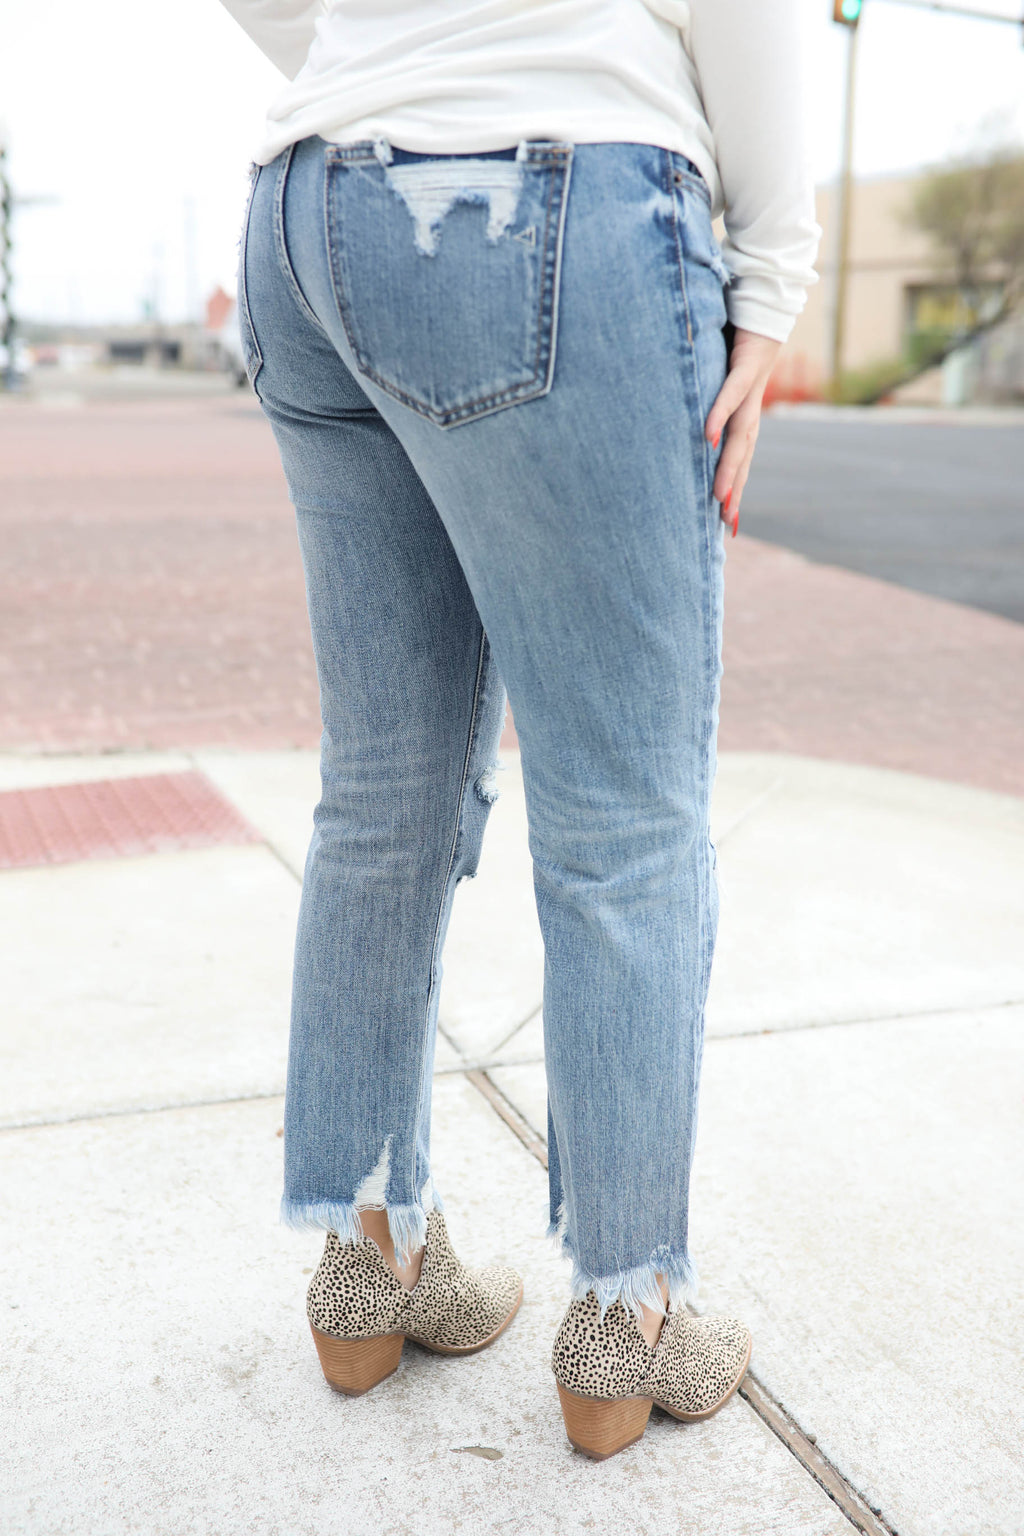 Hidden Bailey Slim Boyfriend Jeans,Bottoms - Denim Jeans